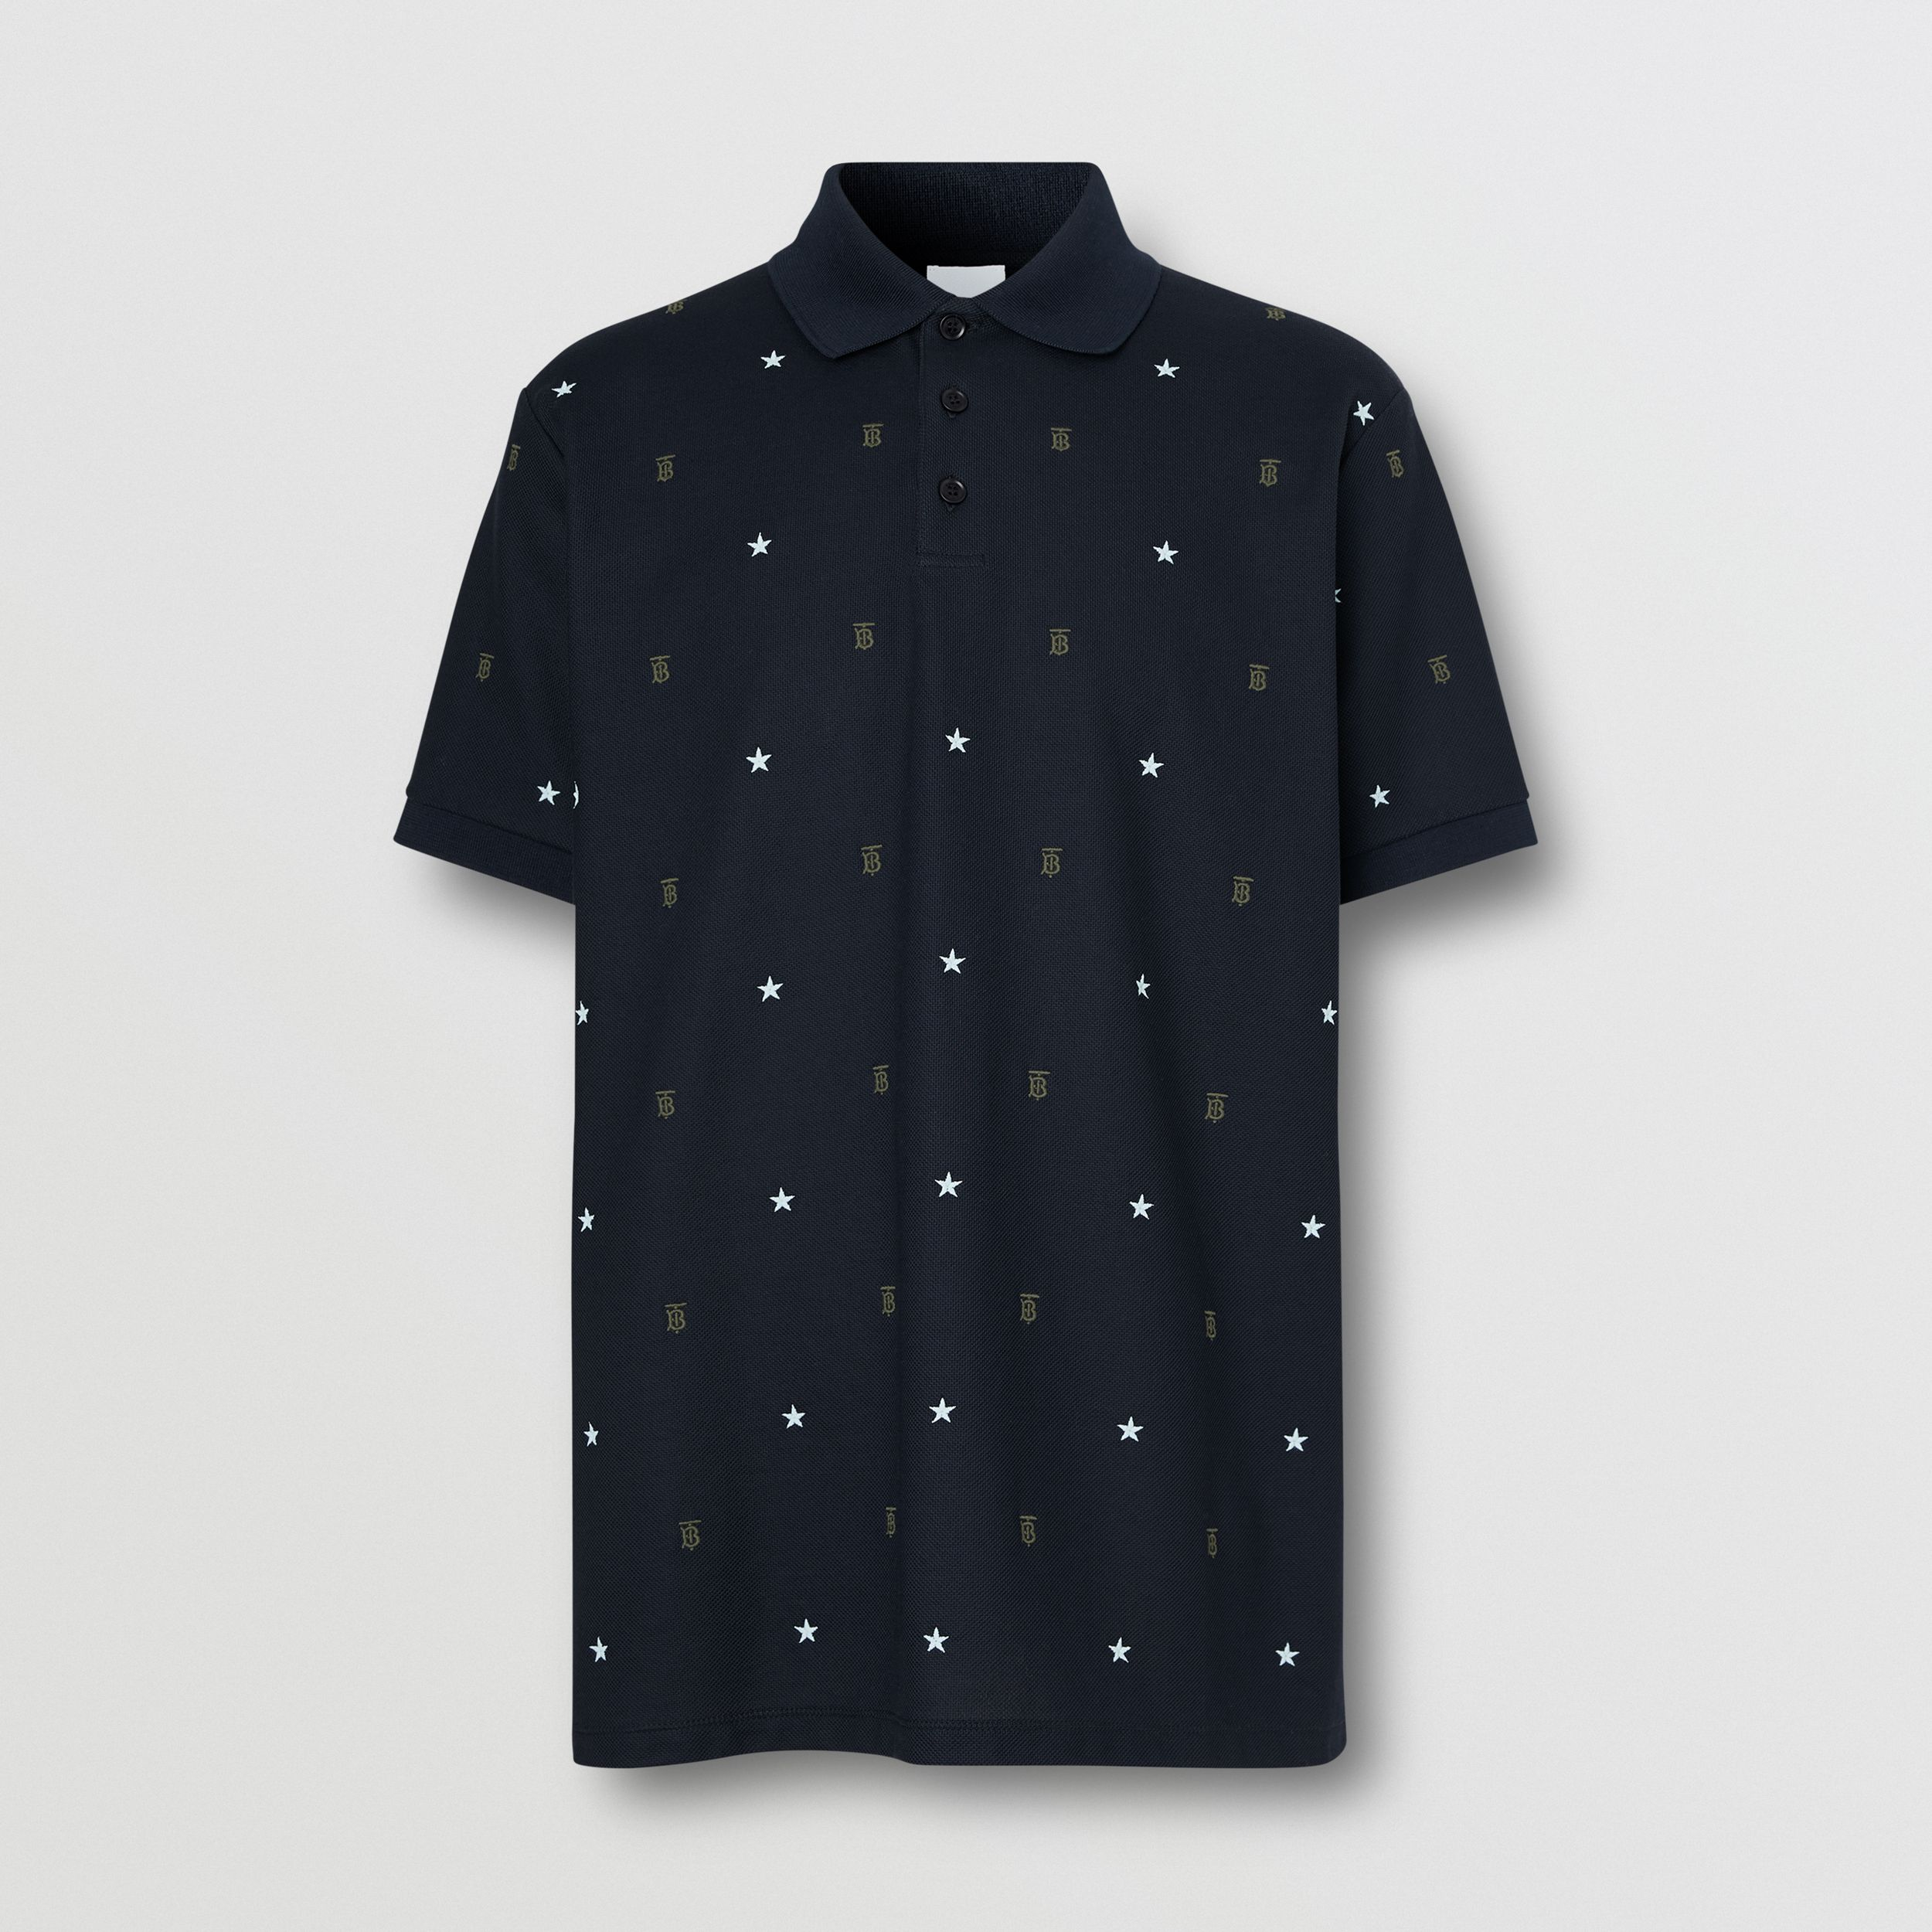 Star and Monogram Motif Cotton Piqué Polo Shirt in Navy - Men | Burberry - 4